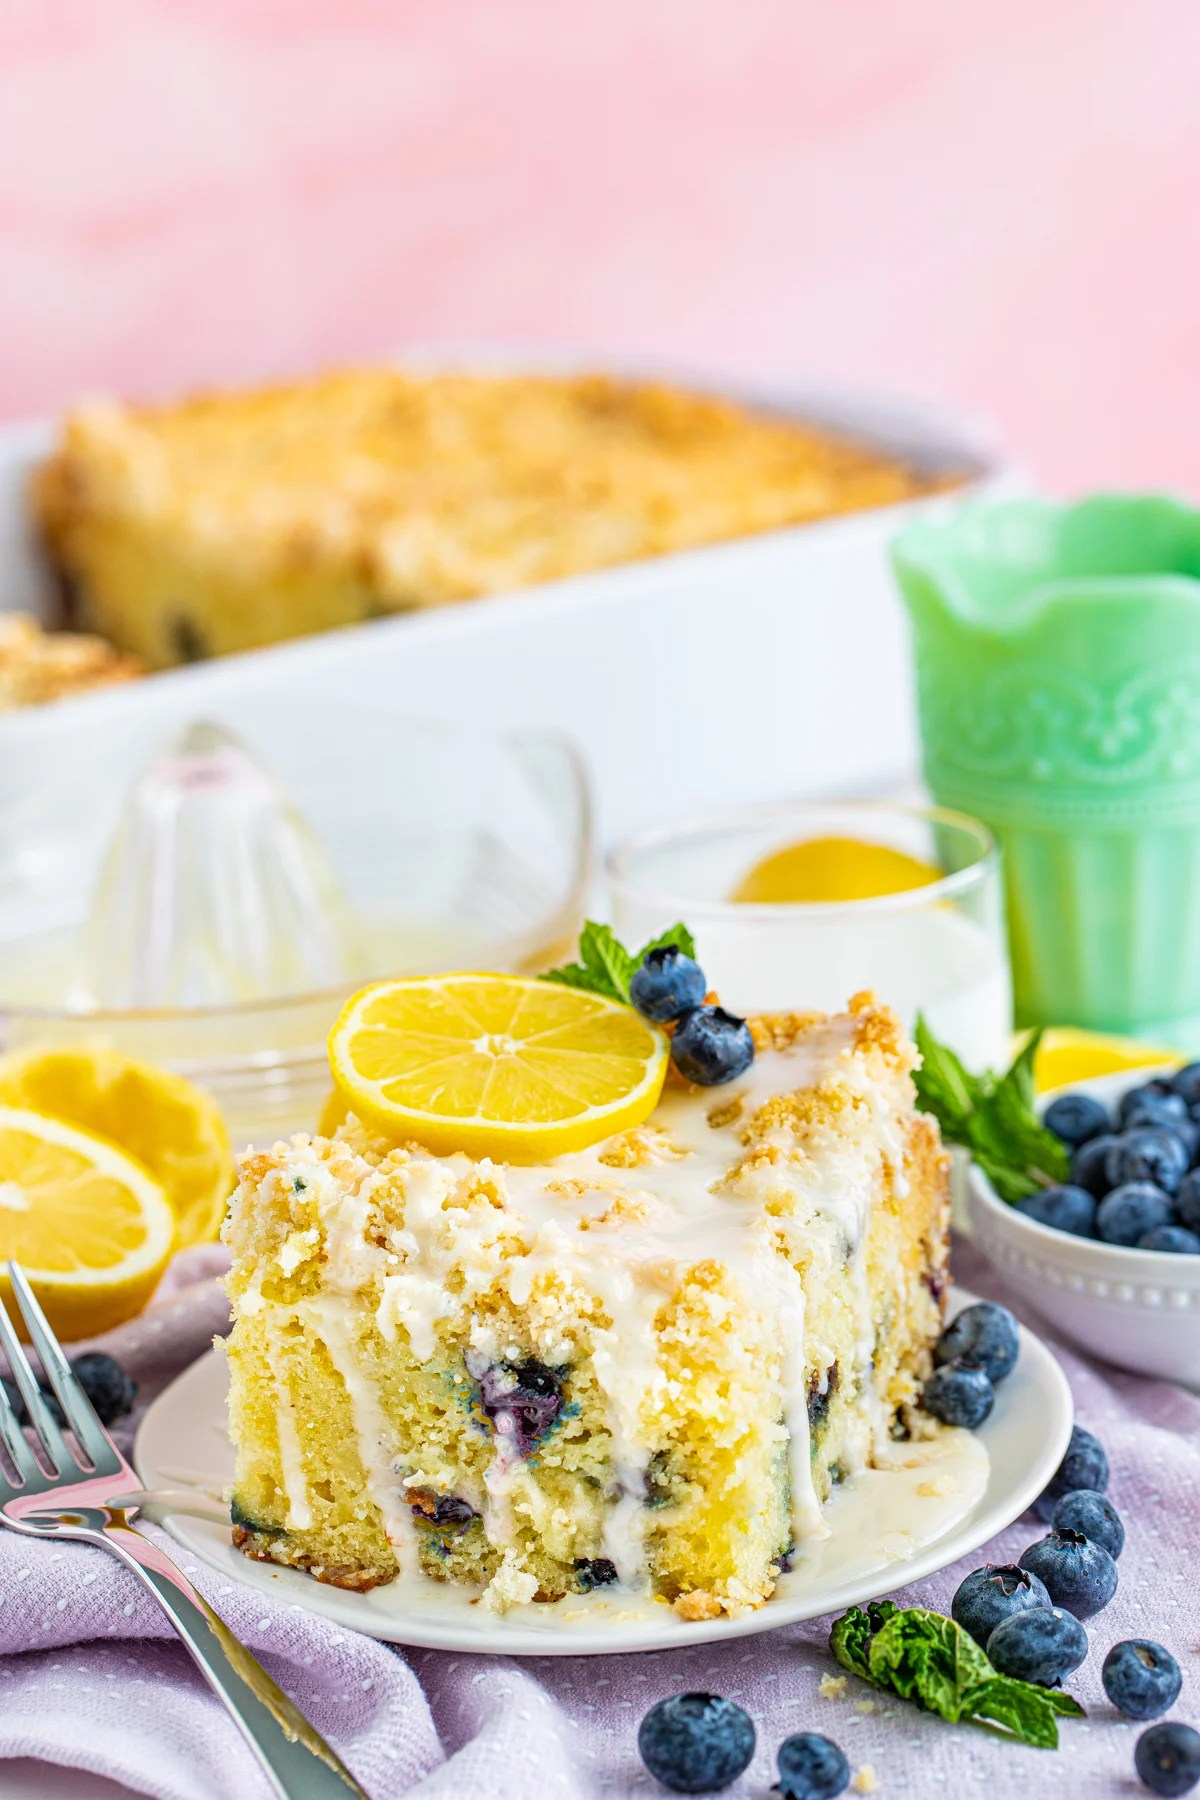 Slice of Lemon Blueberry Coffee cake on white plate topped with lemon, blueberries and mint